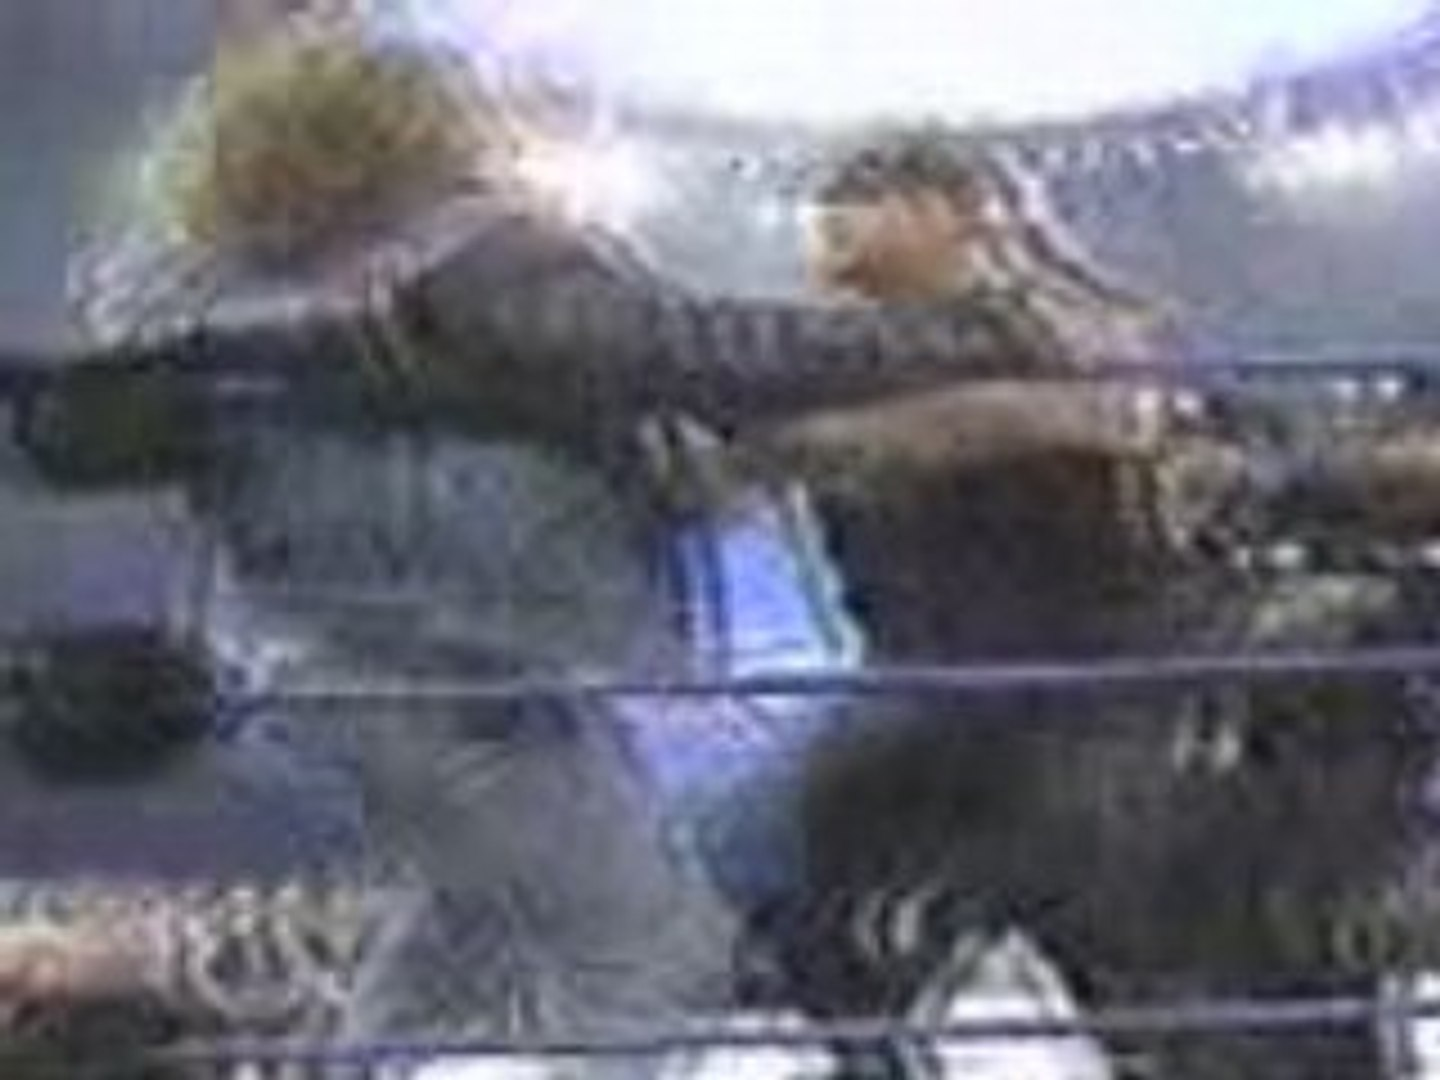 Undertaker throws hhh on the police